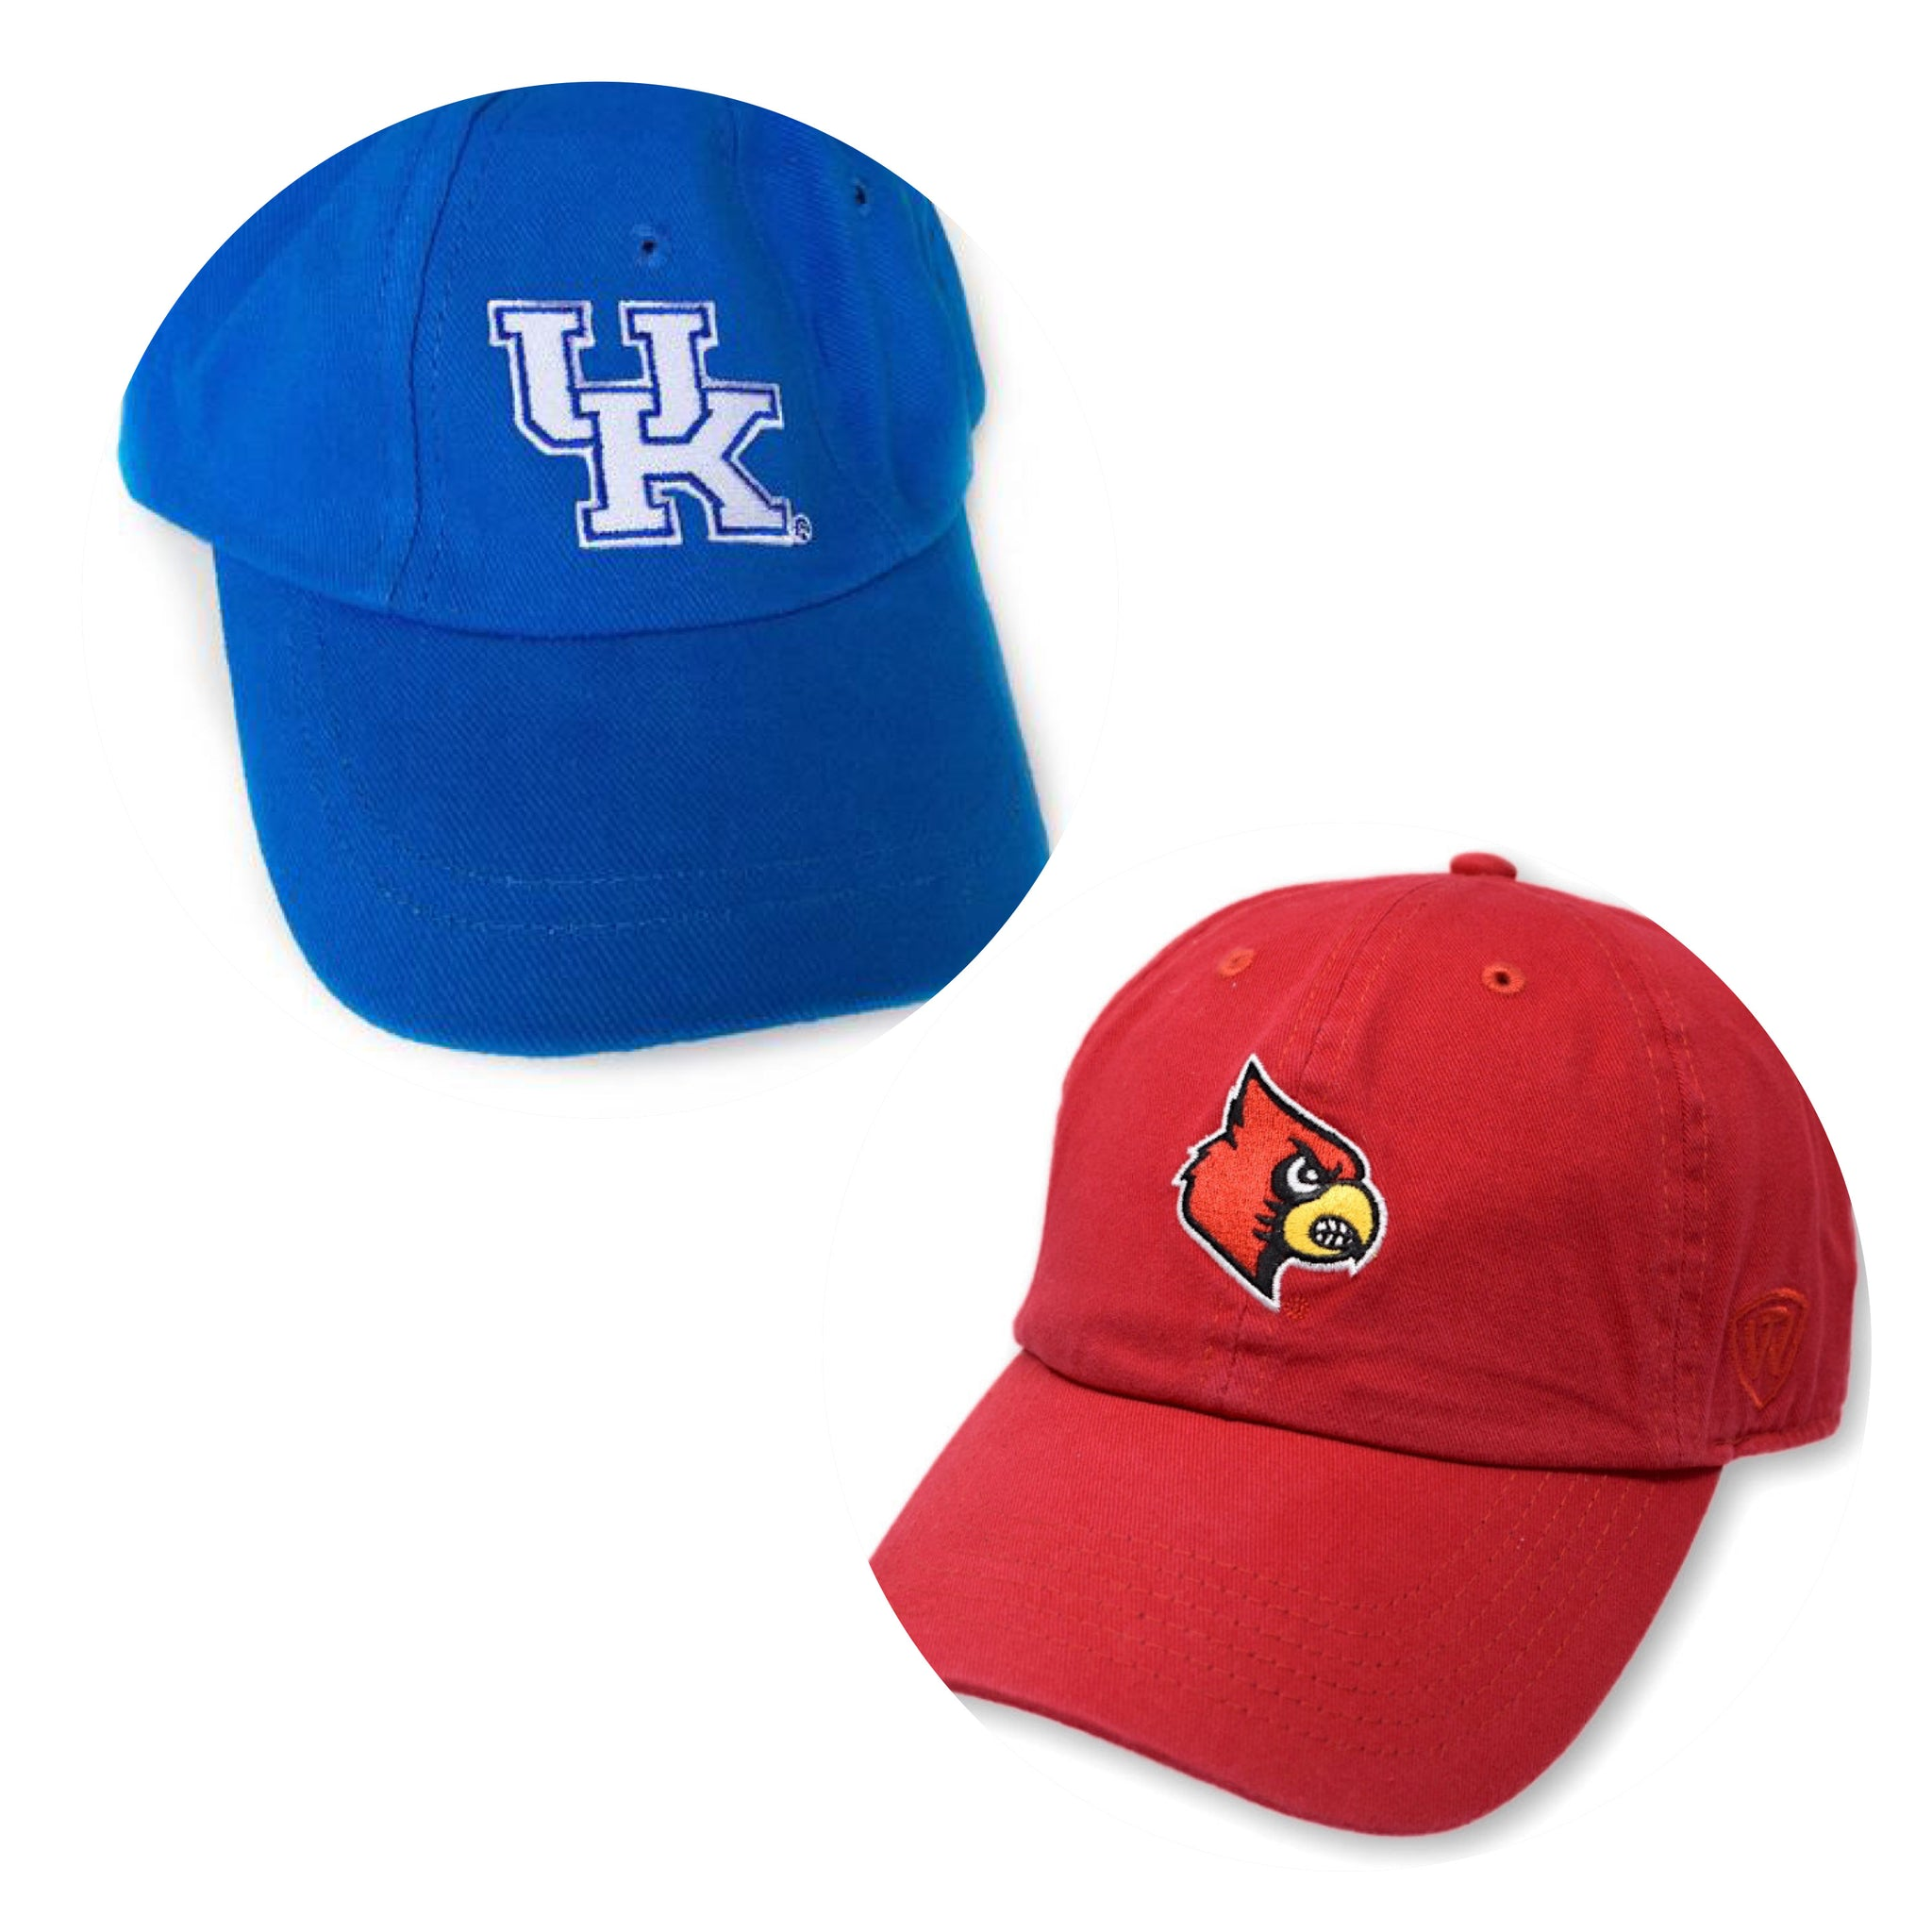 Collegiate Baseball Caps